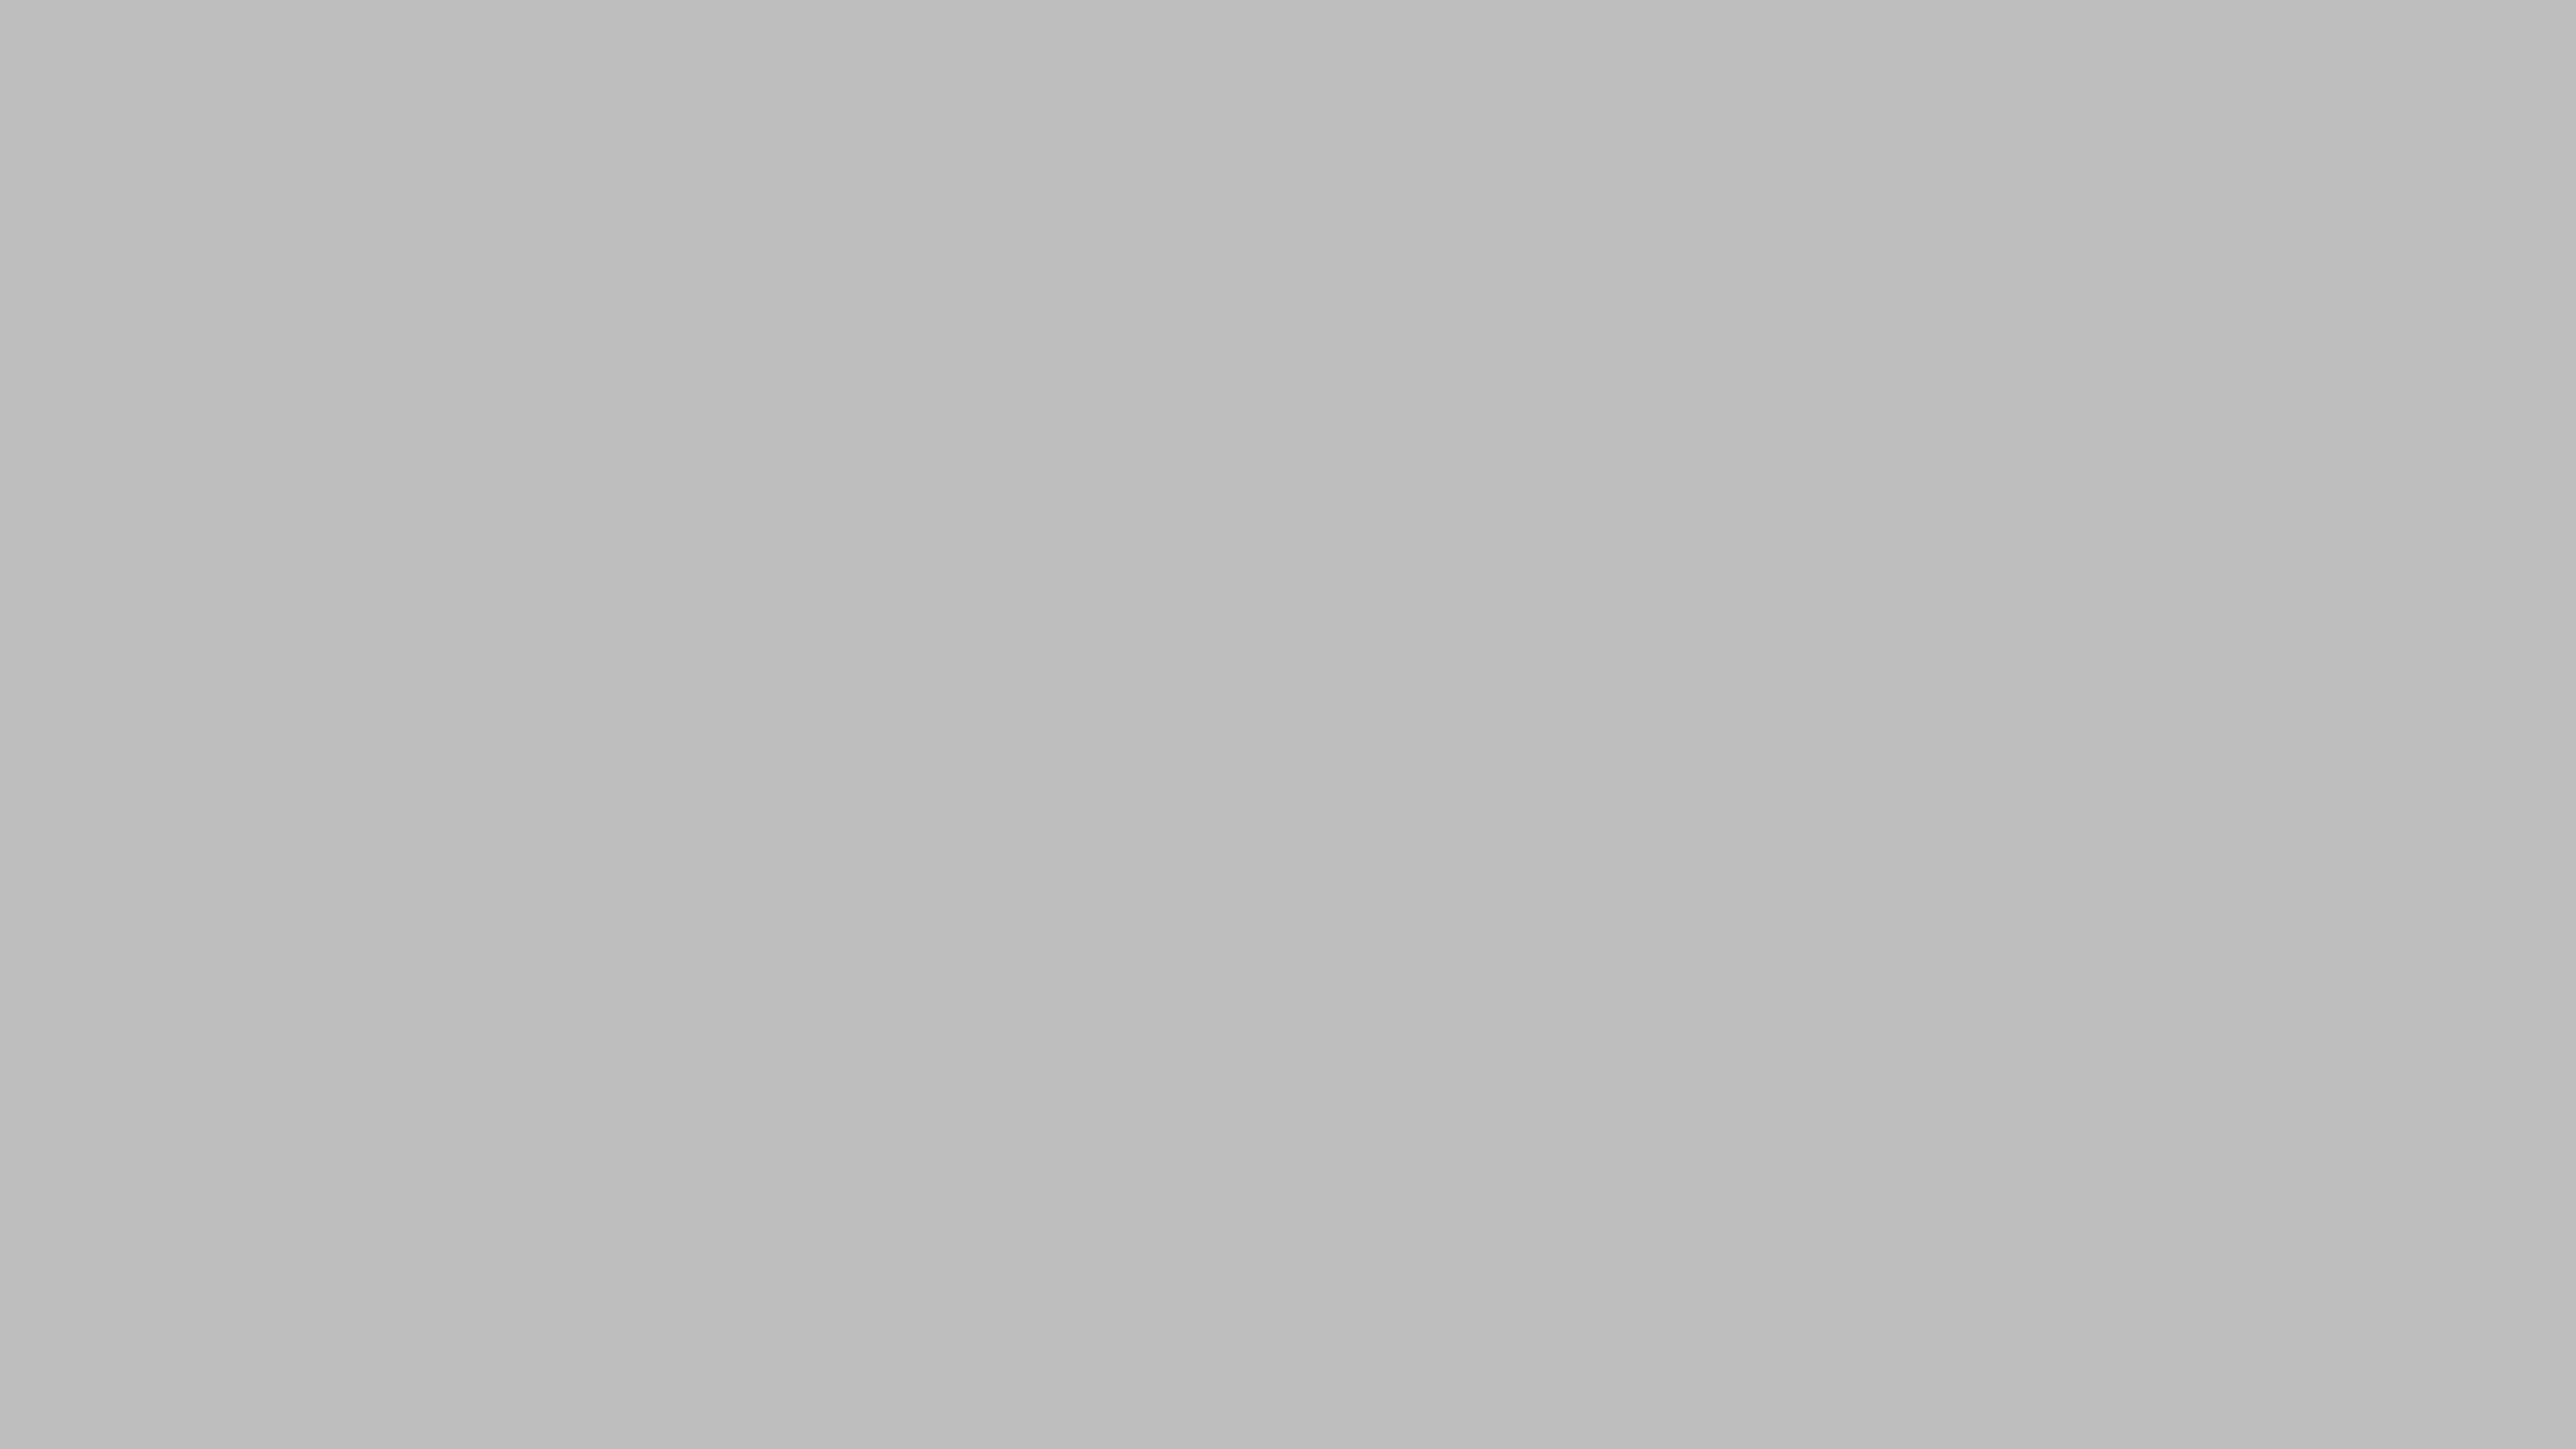 4096x2304 Gray X11 Gui Gray Solid Color Background